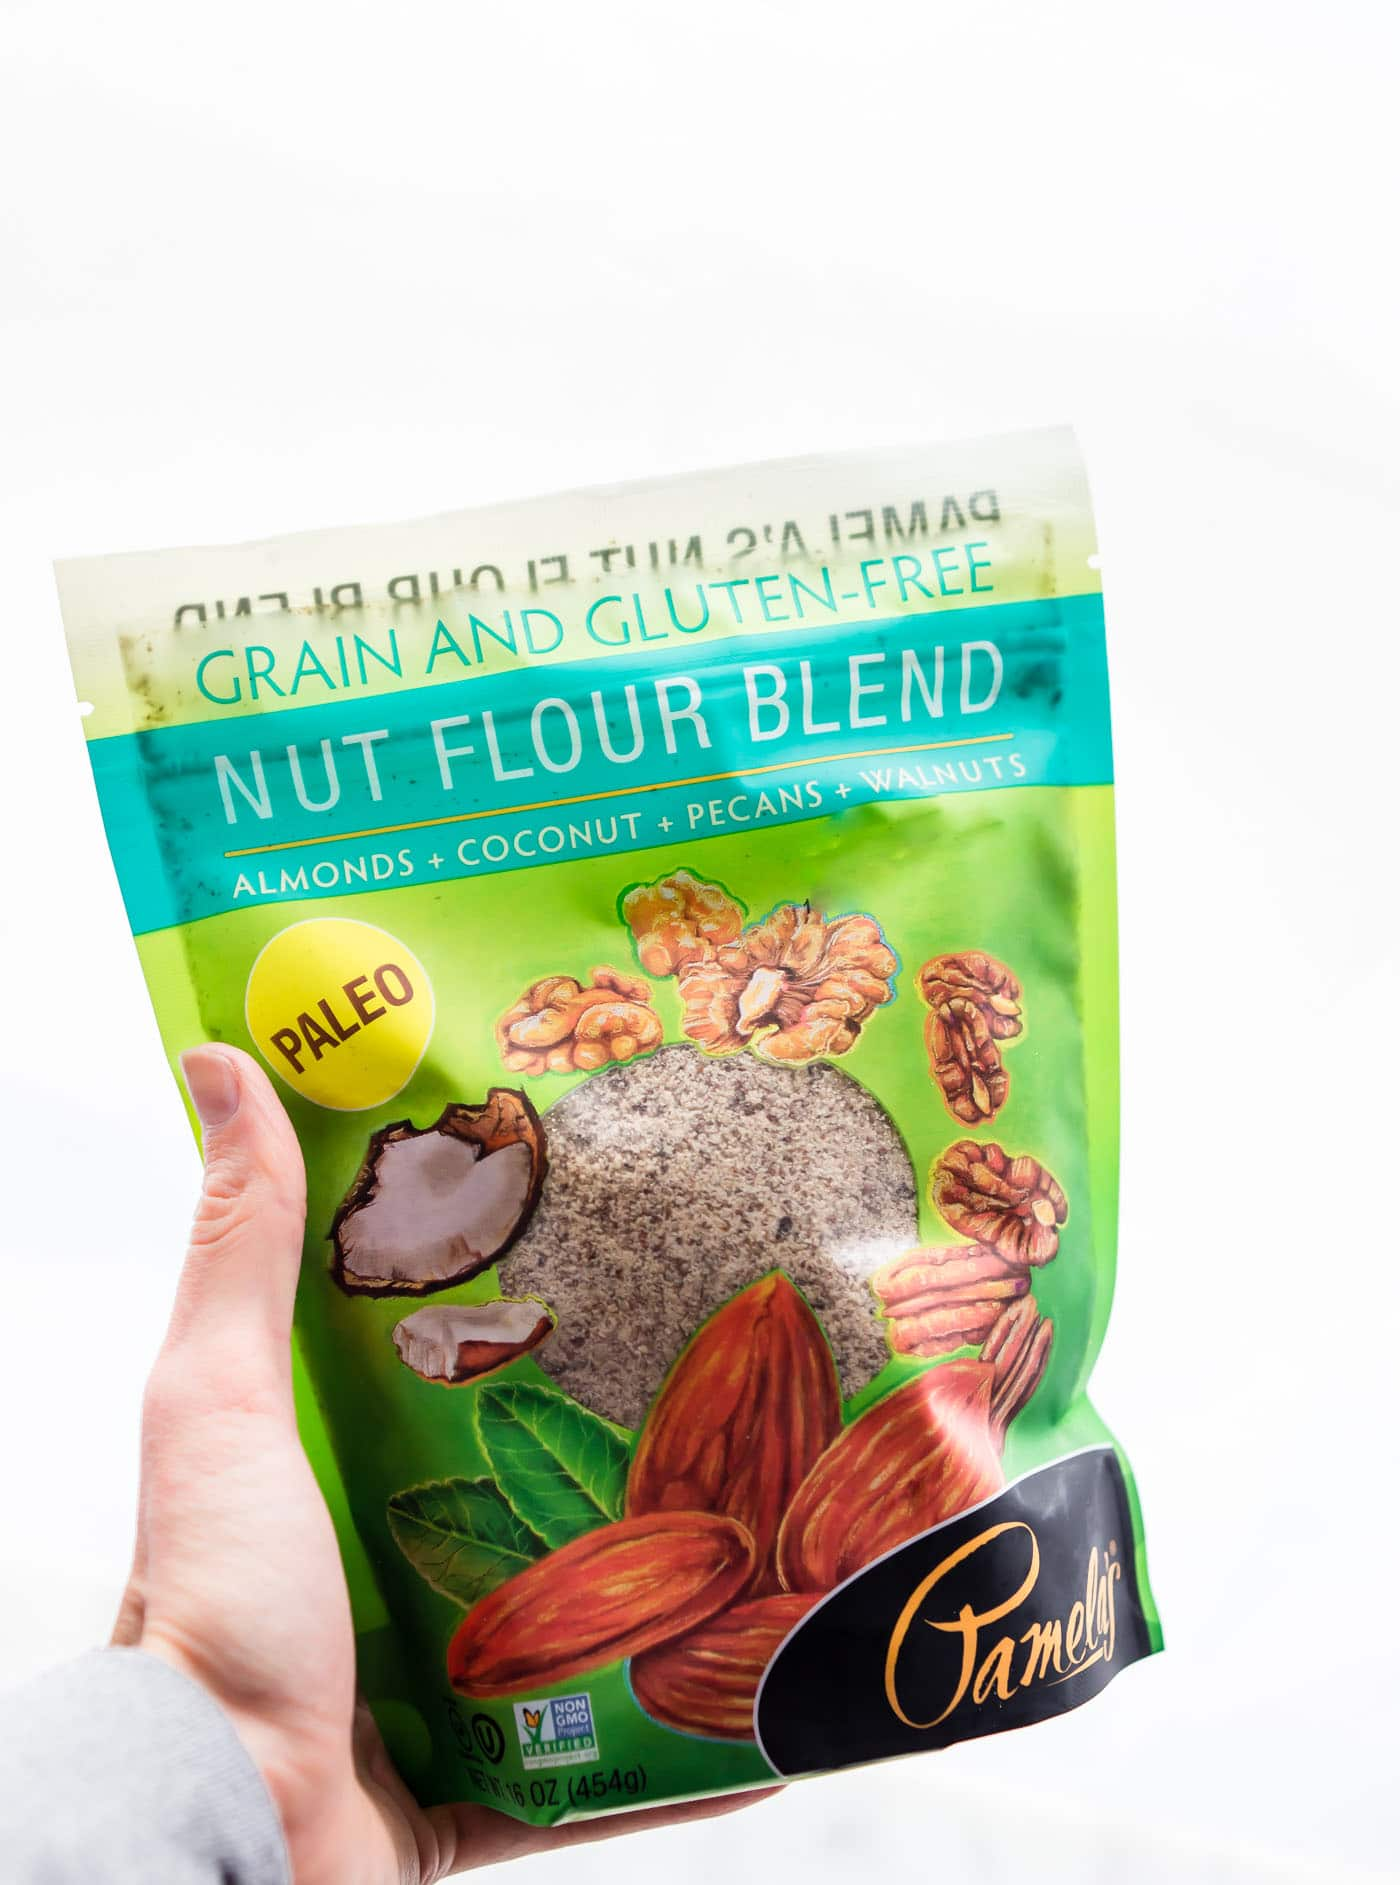 Pamela's grain and gluten-free nut flour blend